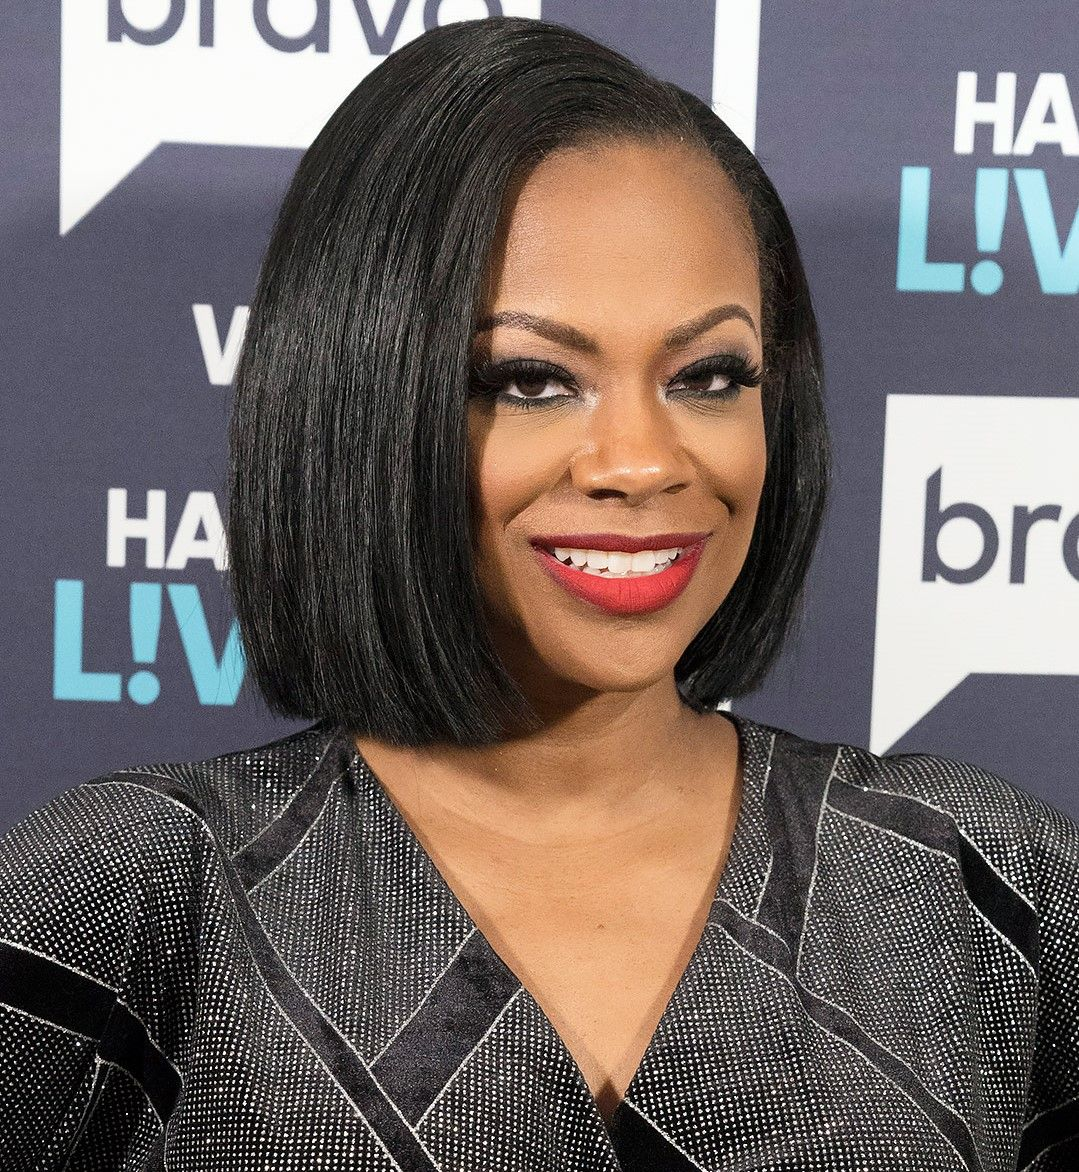 kandi-burruss-invited-eva-marcille-on-her-latest-speak-on-it-episode